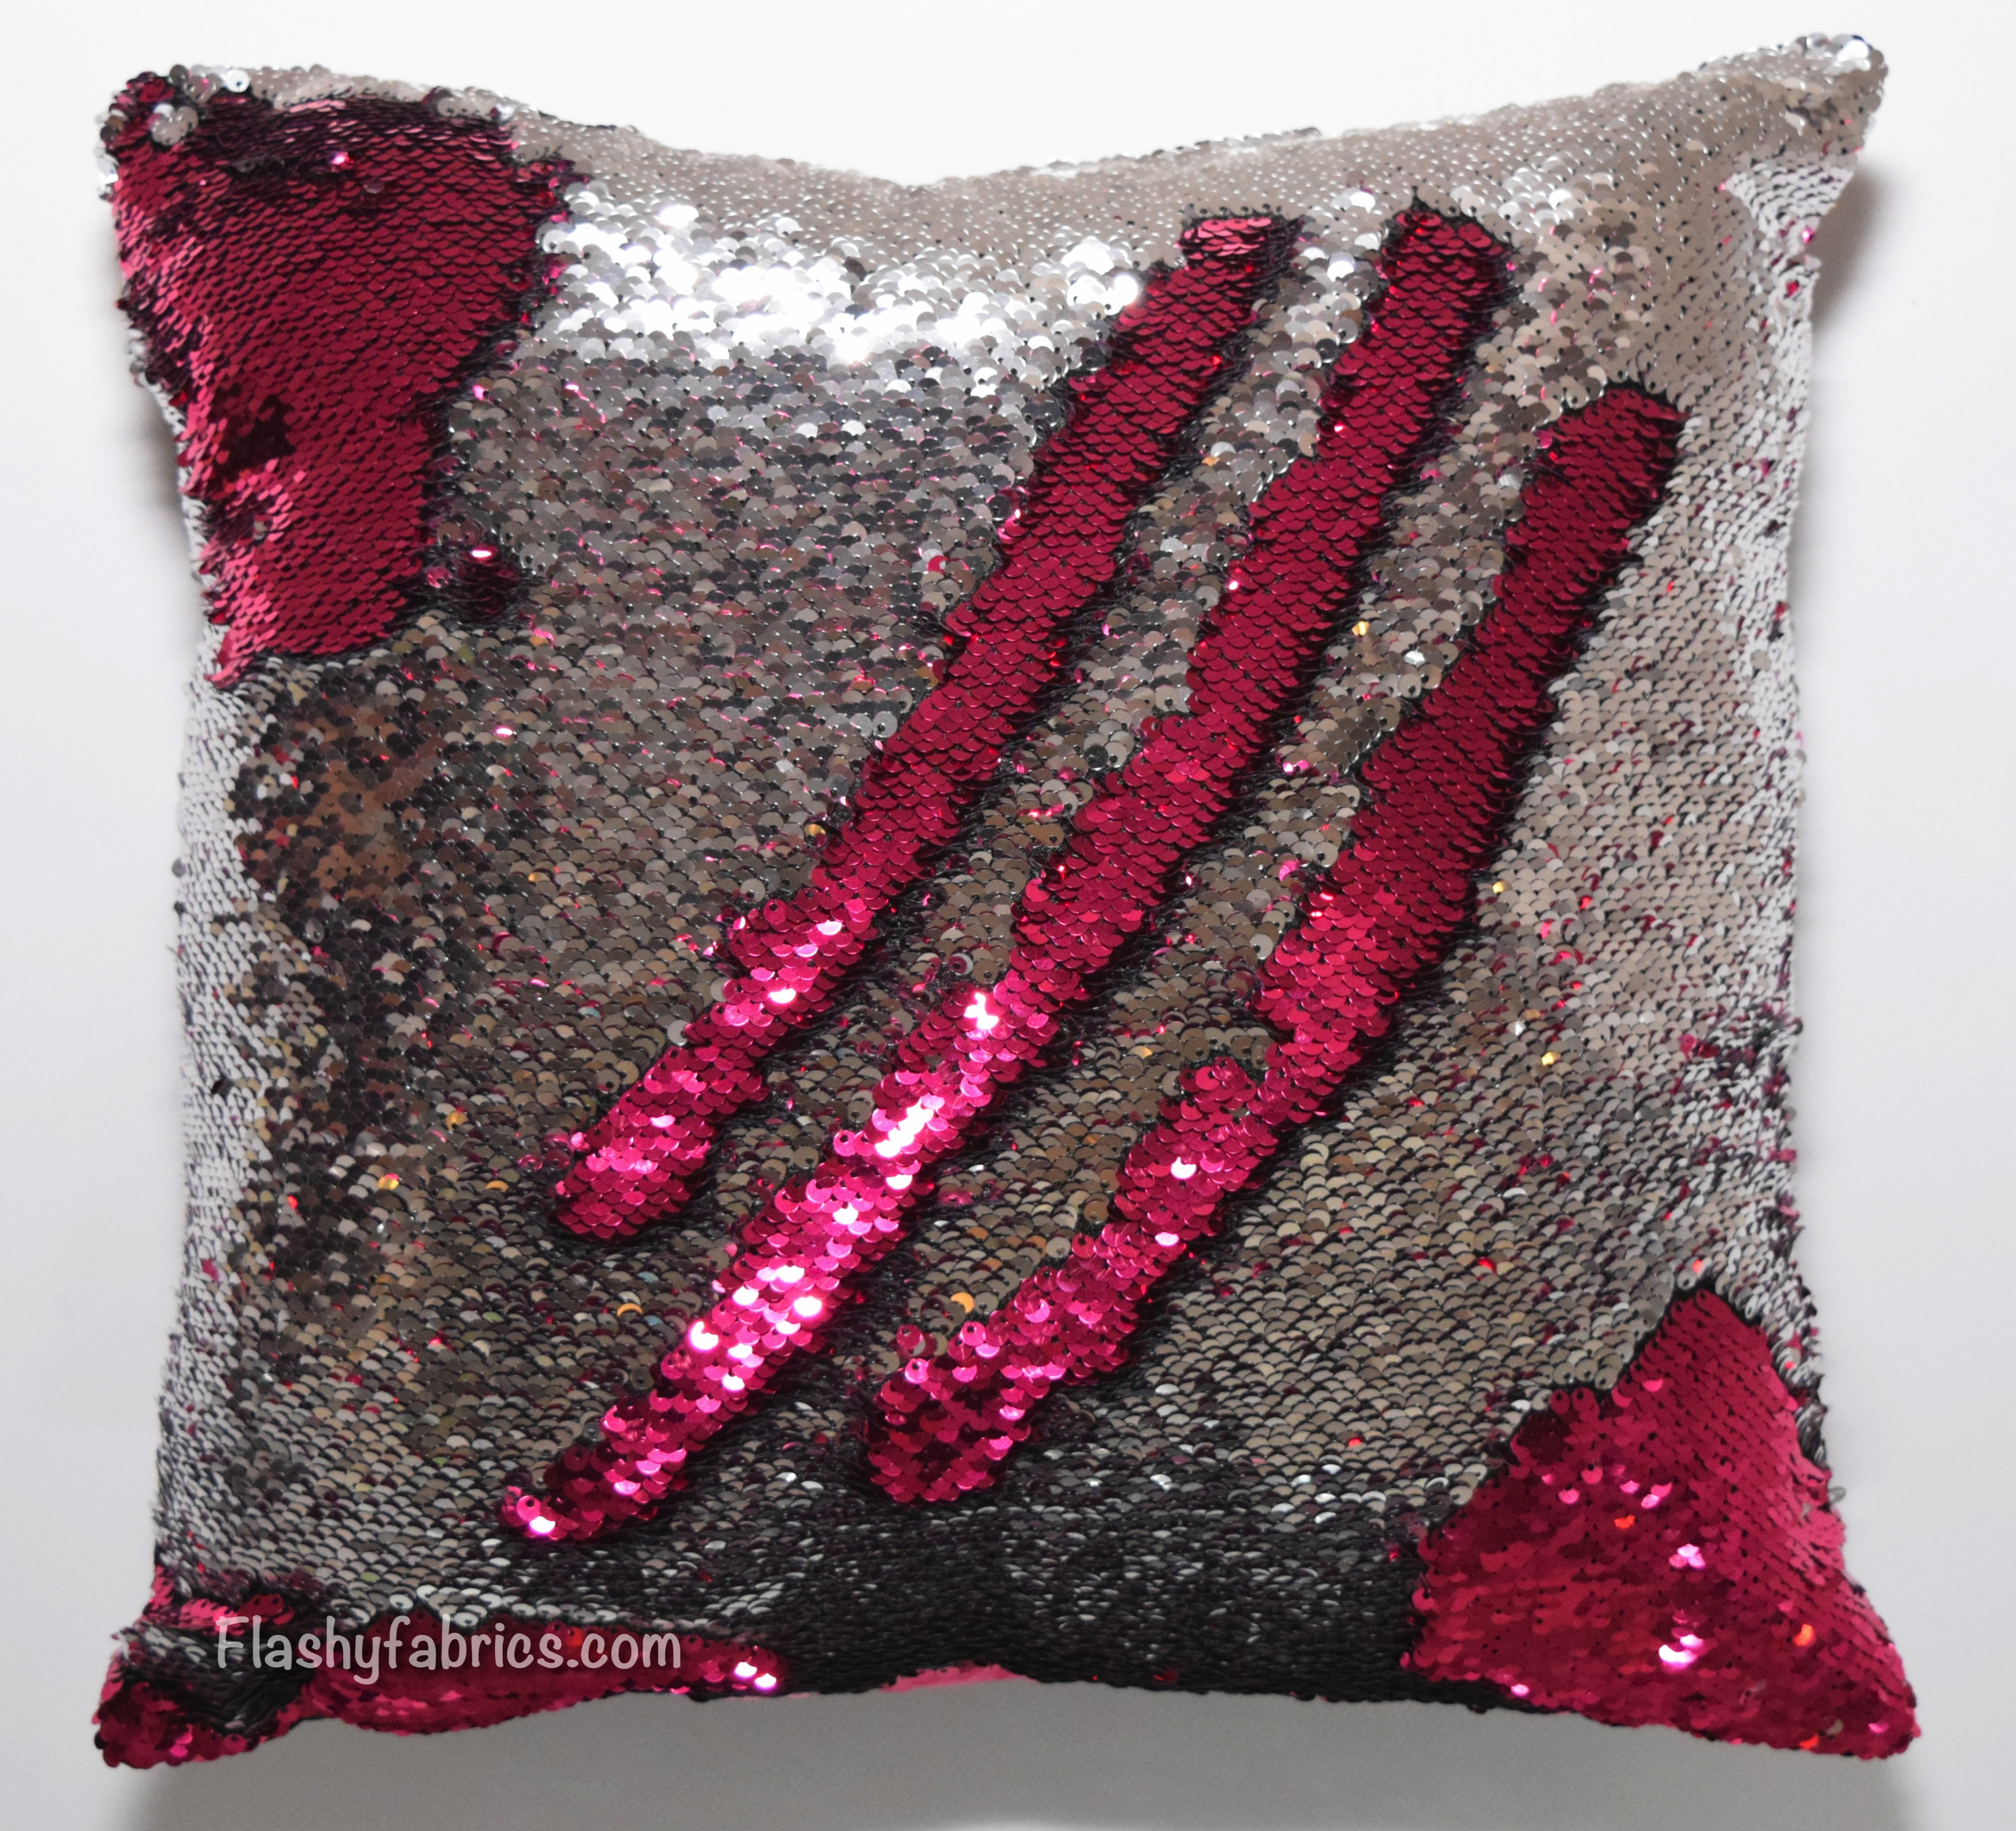 products treasure pillow gaia one tee mermaid sequins sequin stuffed pillows side succulent